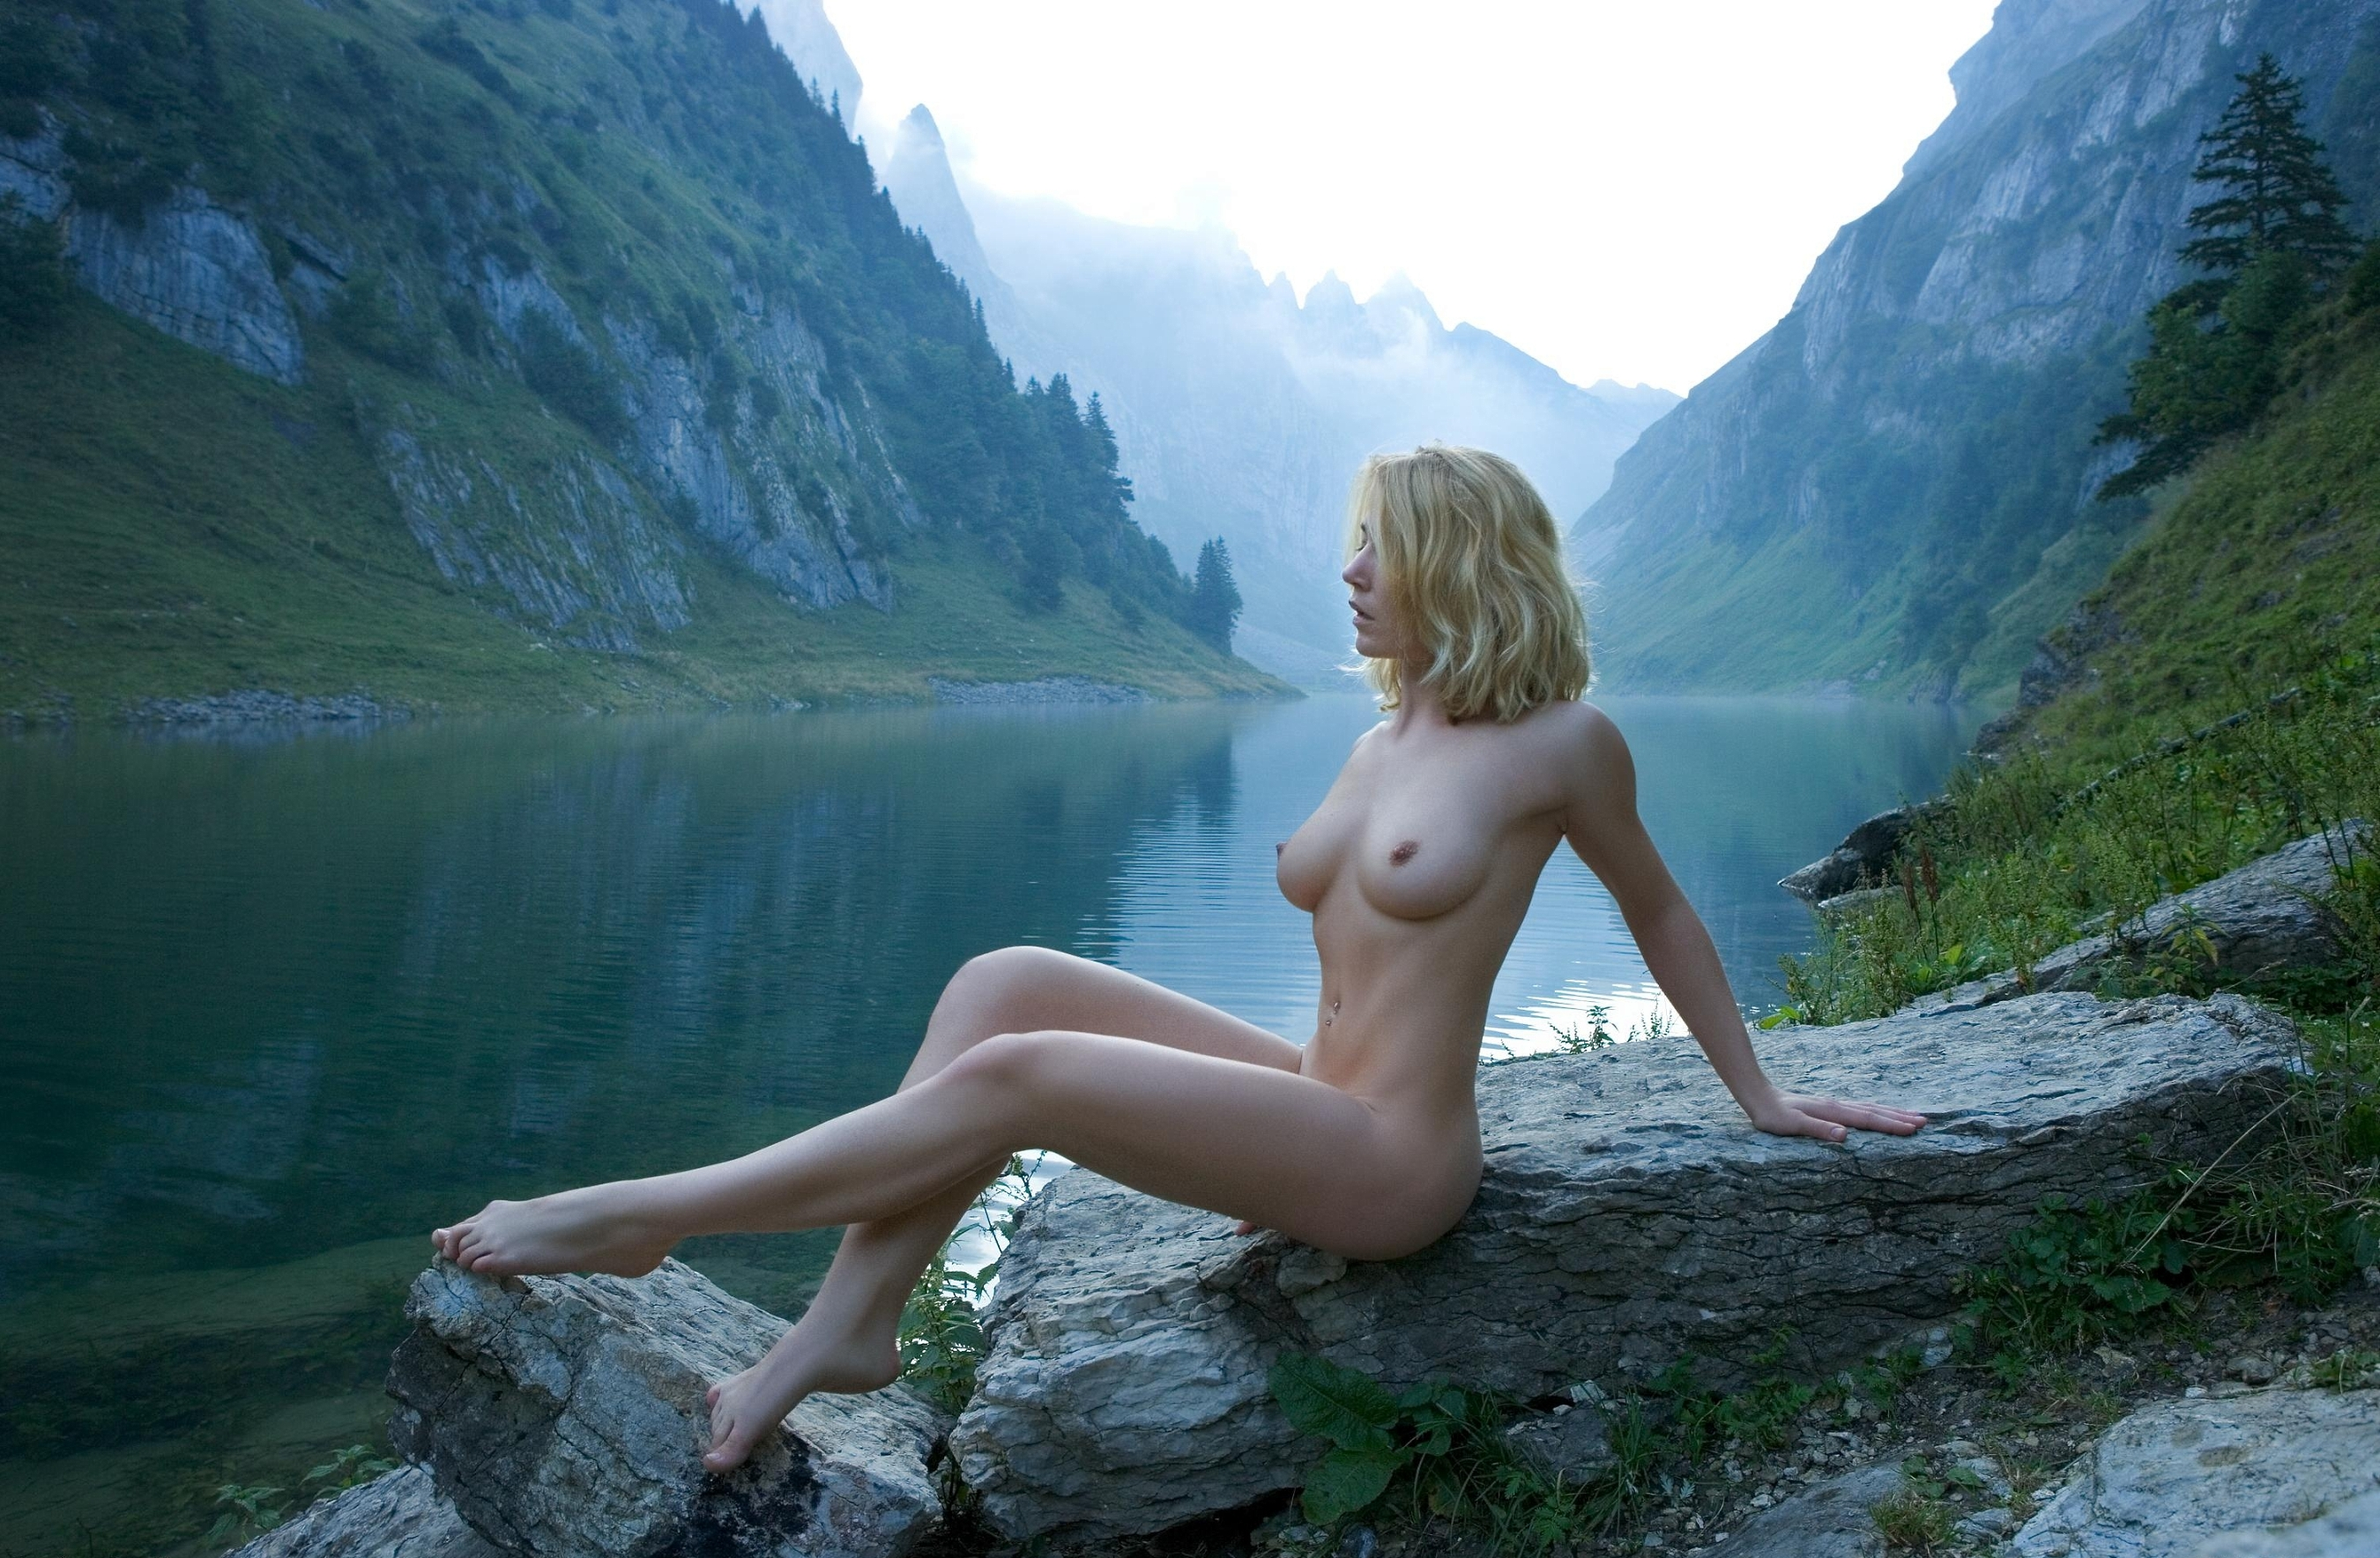 Female mountain girls nude xxx exploited video